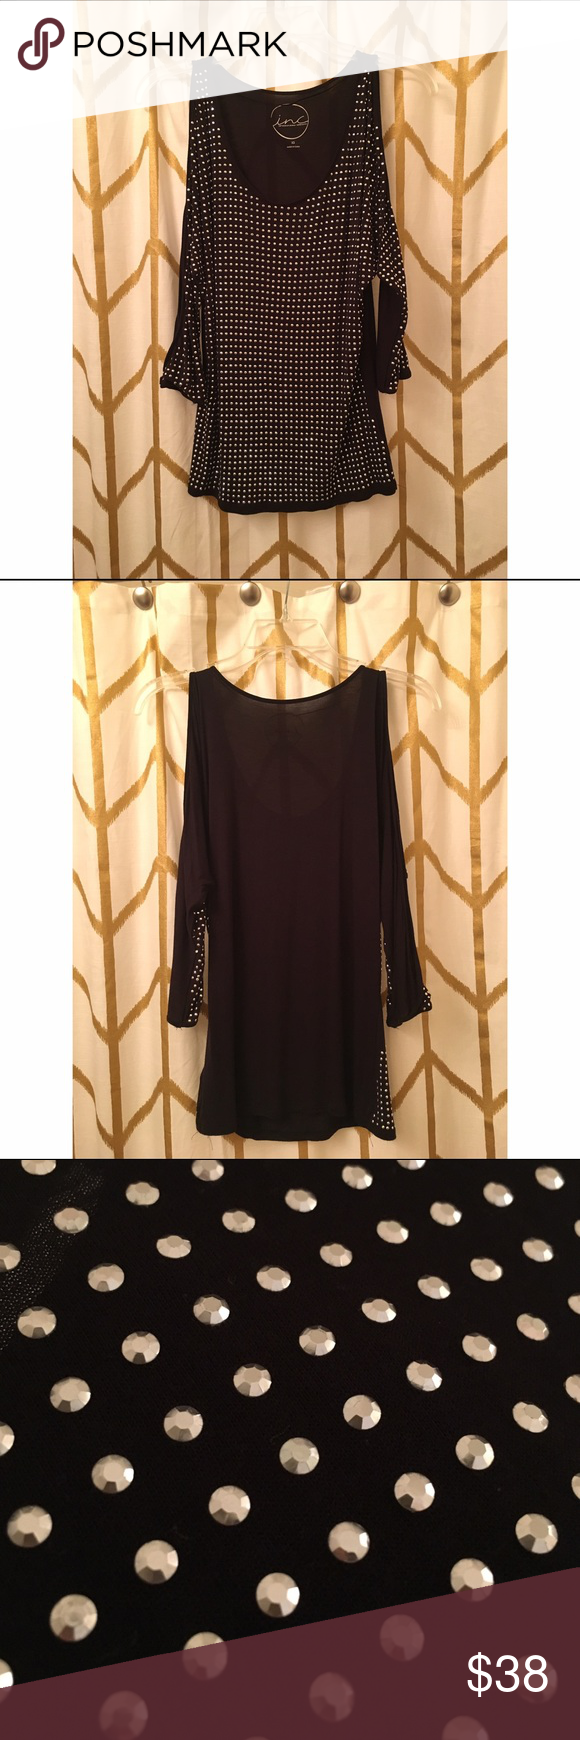 INC Black Top This top has only been worn once. Wonderful, like- new condition! It is very soft and is on trend with its open shoulder sleeves. On the front, there are small silver lightweight studs for the added glam look. INC International Concepts Tops Tees - Long Sleeve